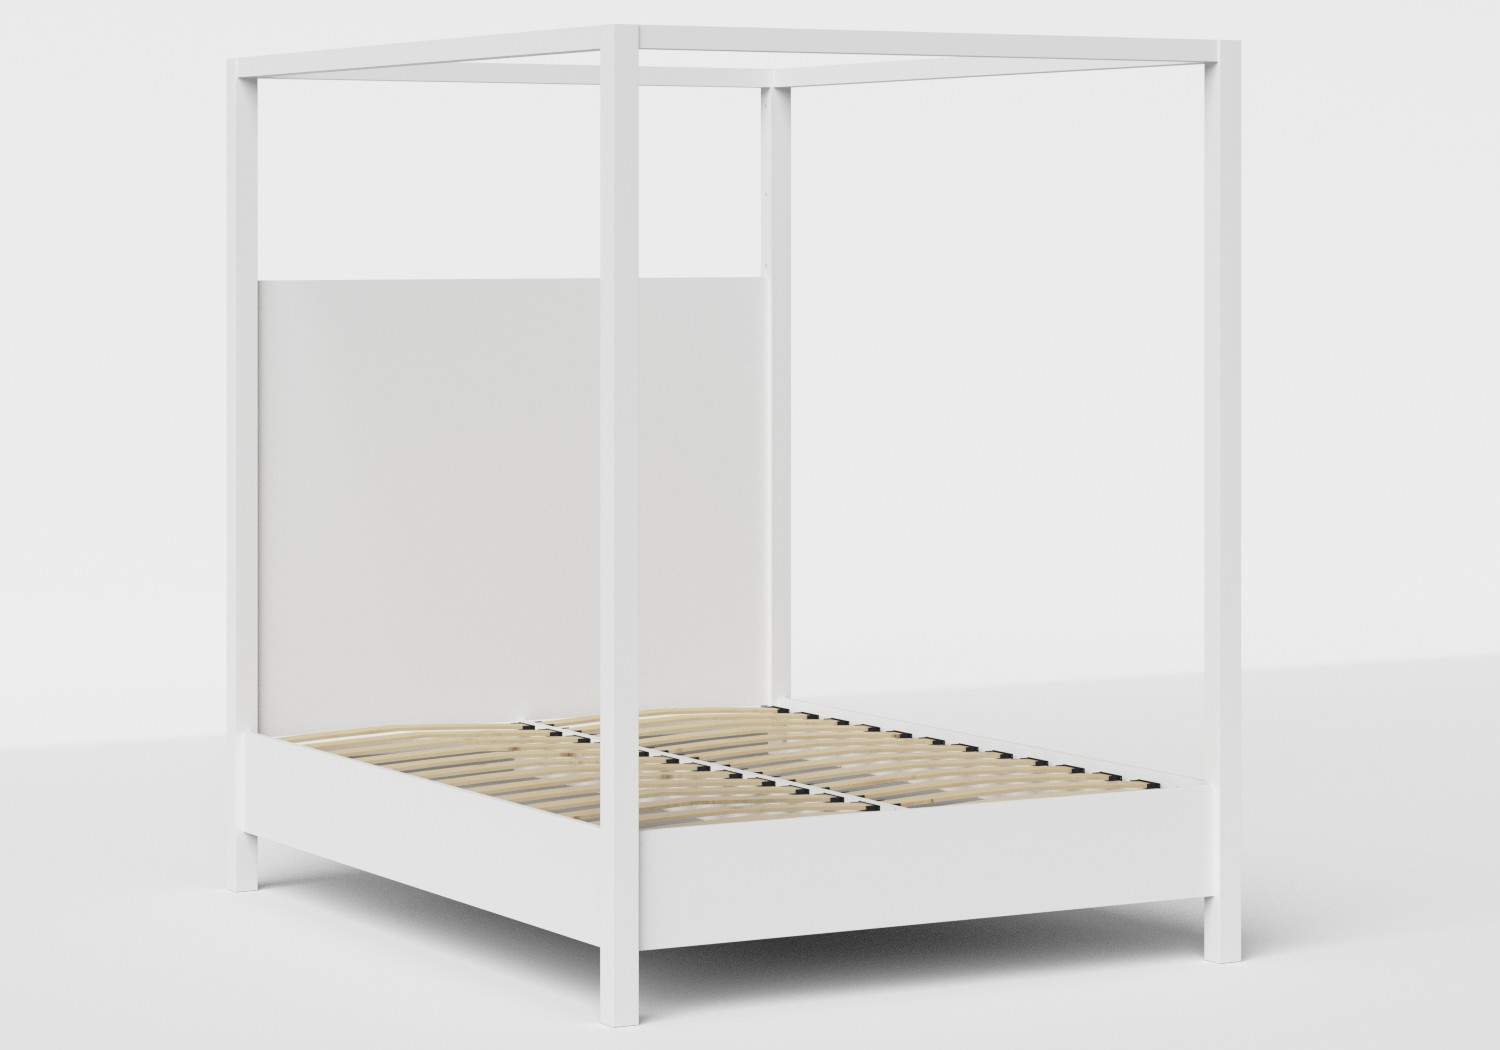 Churchill Wood Bed in White shown with slatted frame